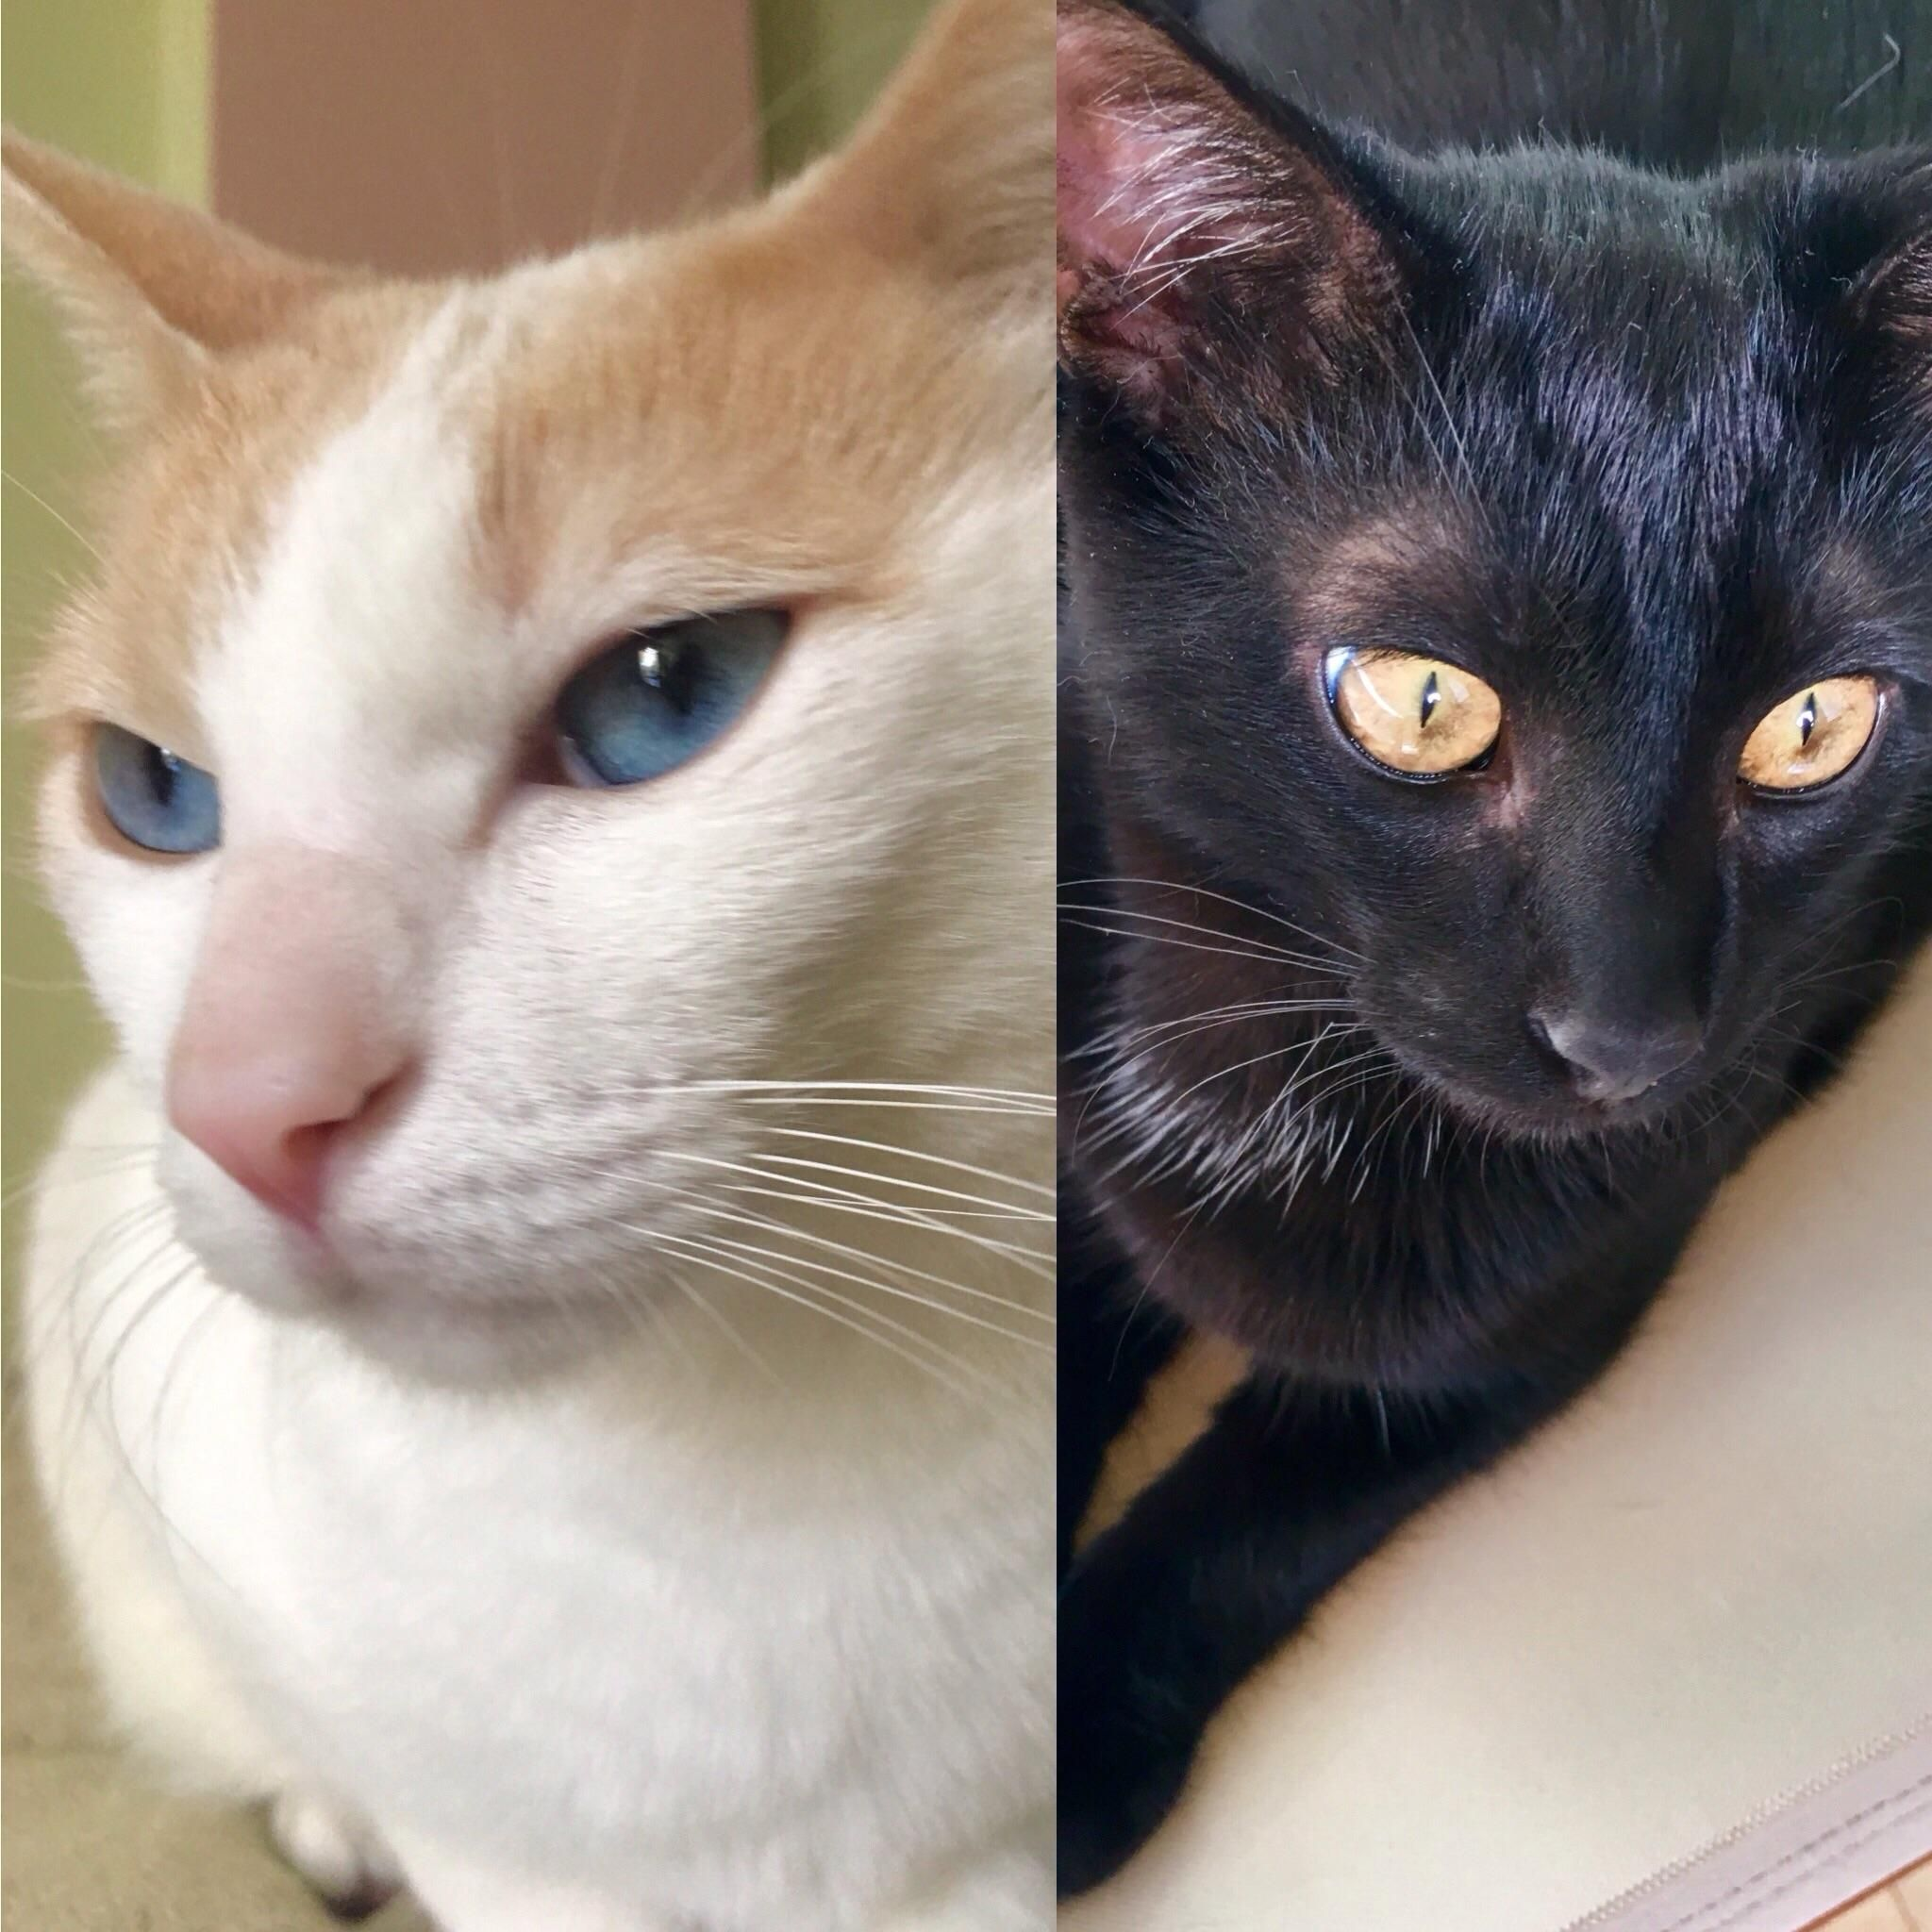 A Lucky Japanese Bobtail And A Lucky Black Cat We Are The Experts To Give You Your Weekly Lucky Kisses Muah Japanese Bobtail Cats Cat Pictures For Kids